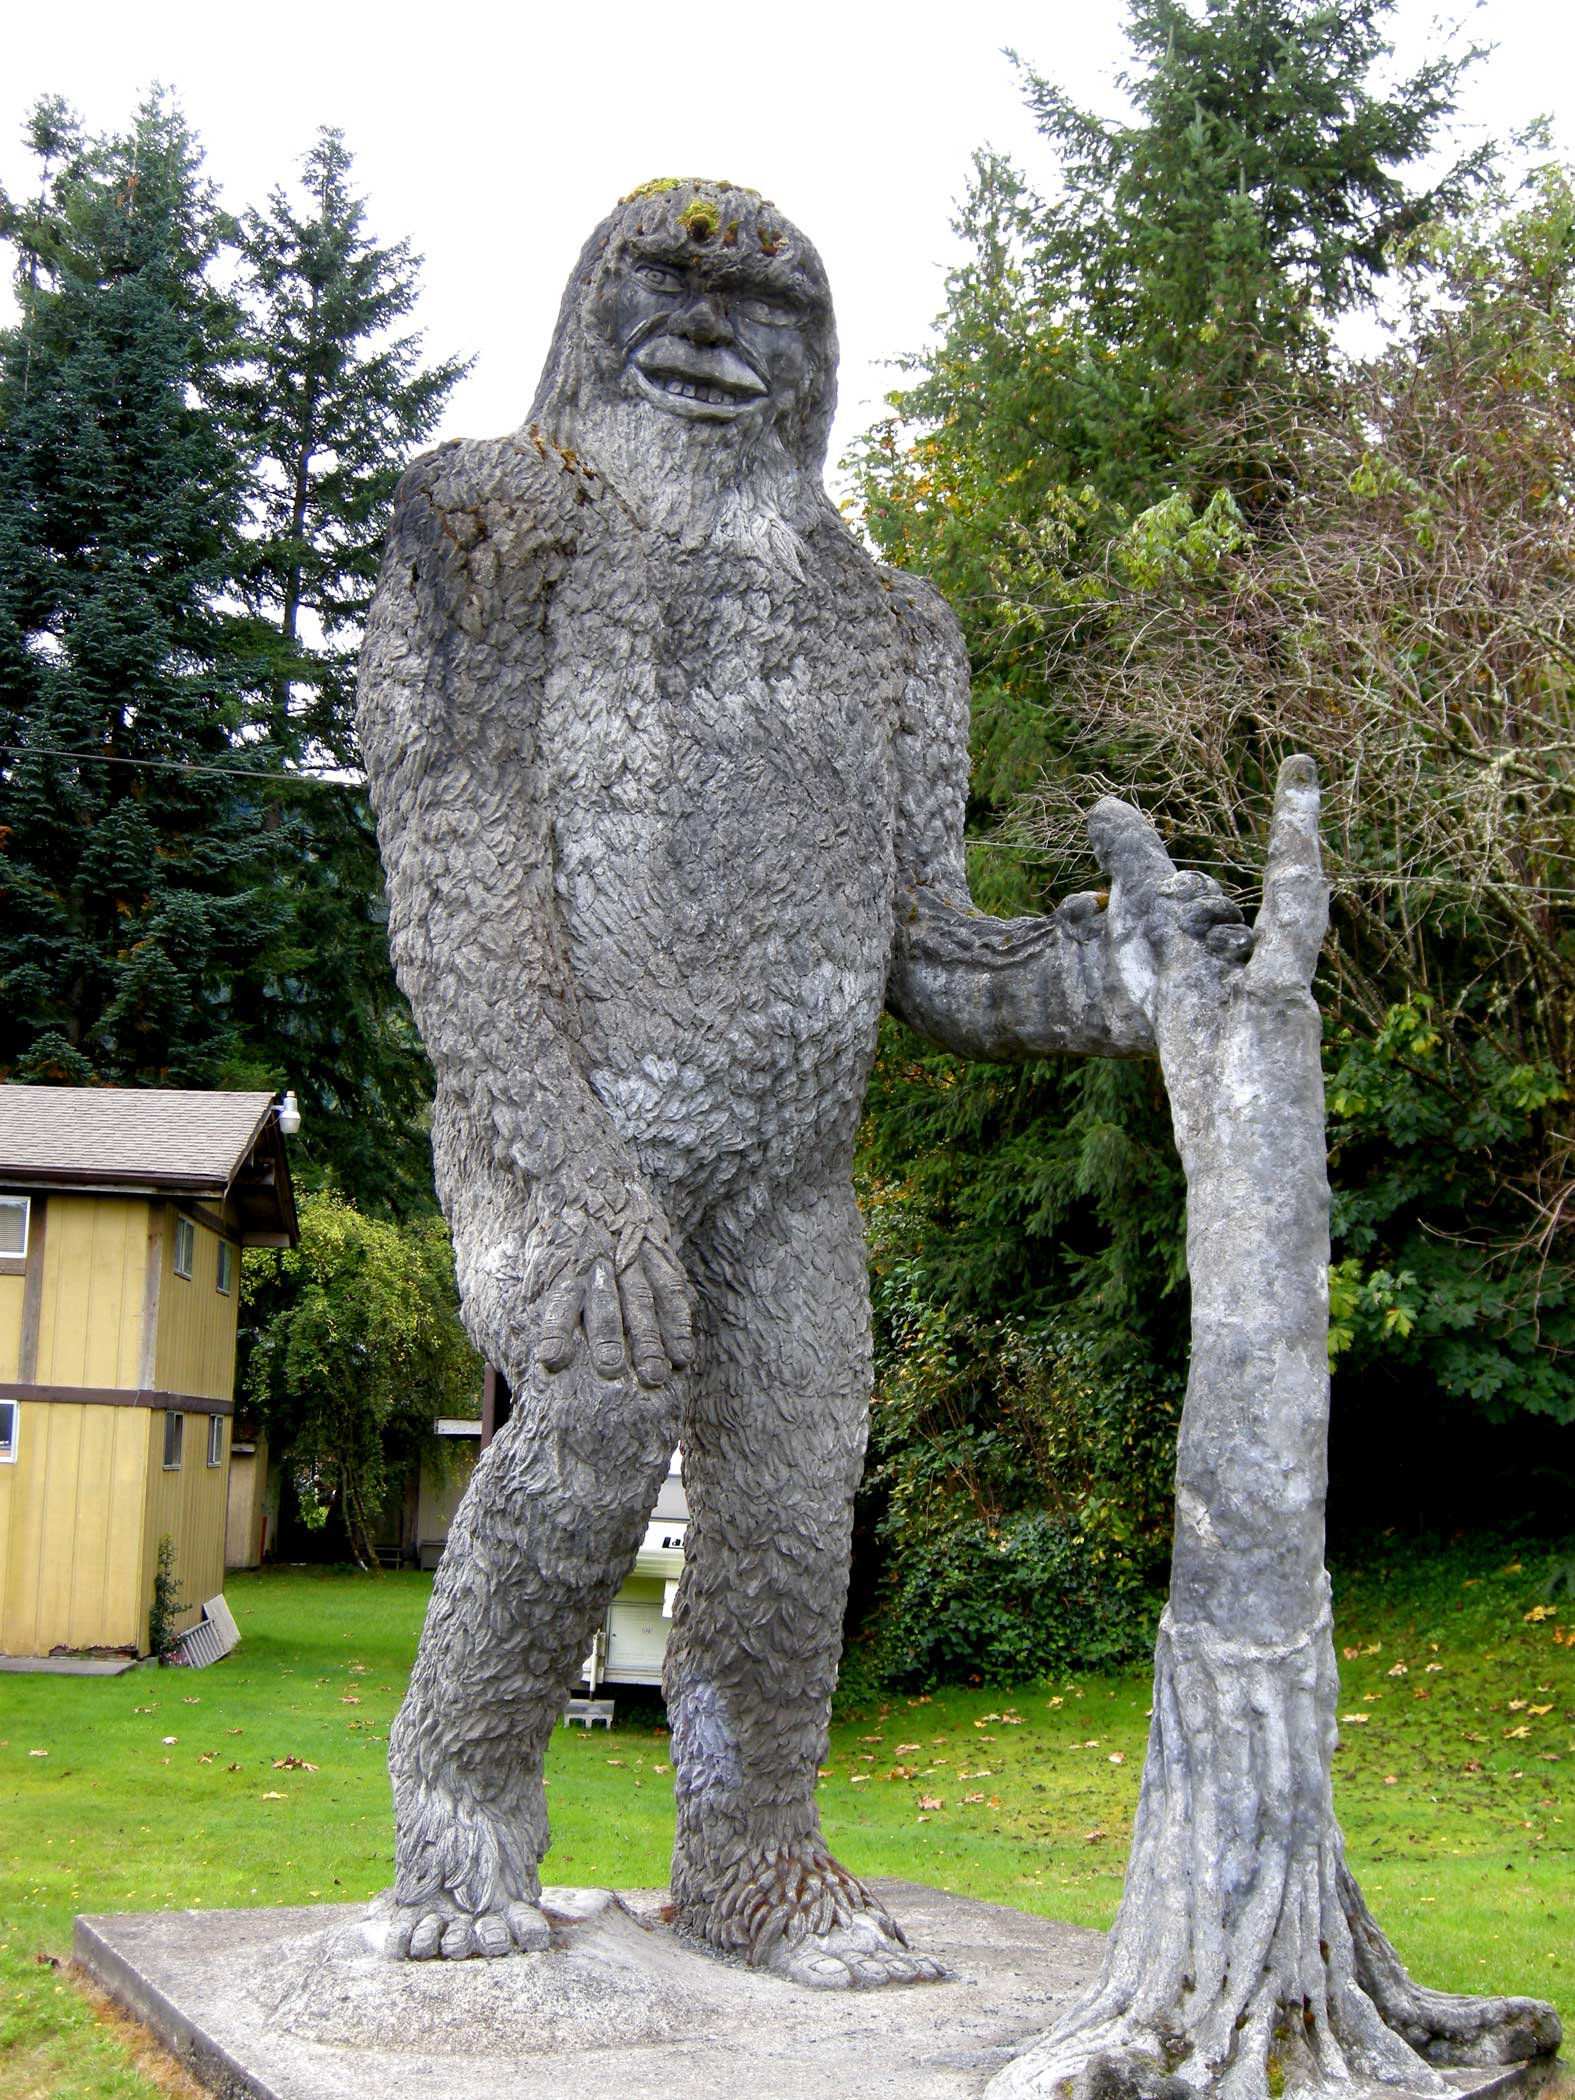 Folk carving of Bigfoot near Silver Lake, WA. https://commons.wikimedia.org/wiki/Category:Bigfoot#/media/File:BigfootStatue-SilverLakeWA.jpg